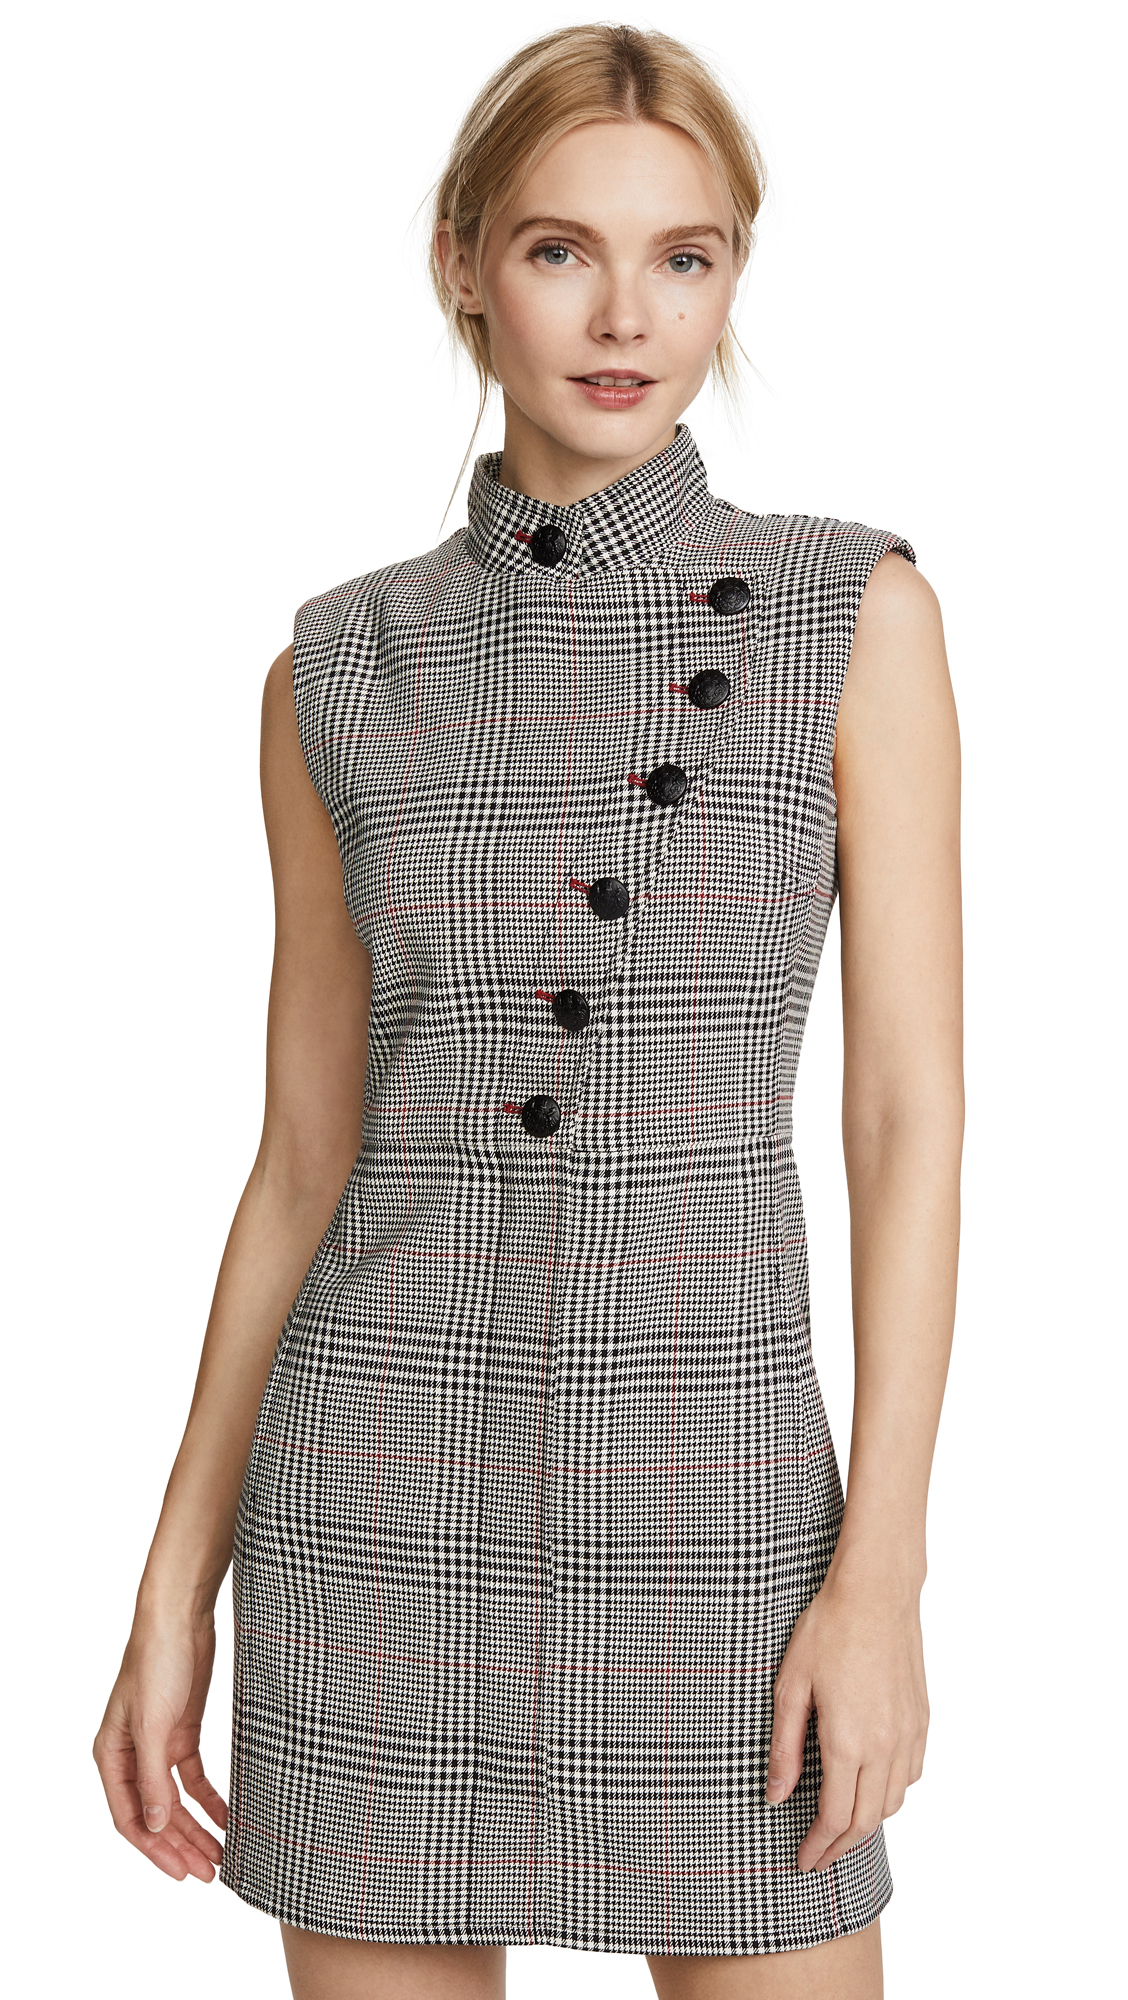 Veronica Beard Coco Button Up Dress - White/Black/Red